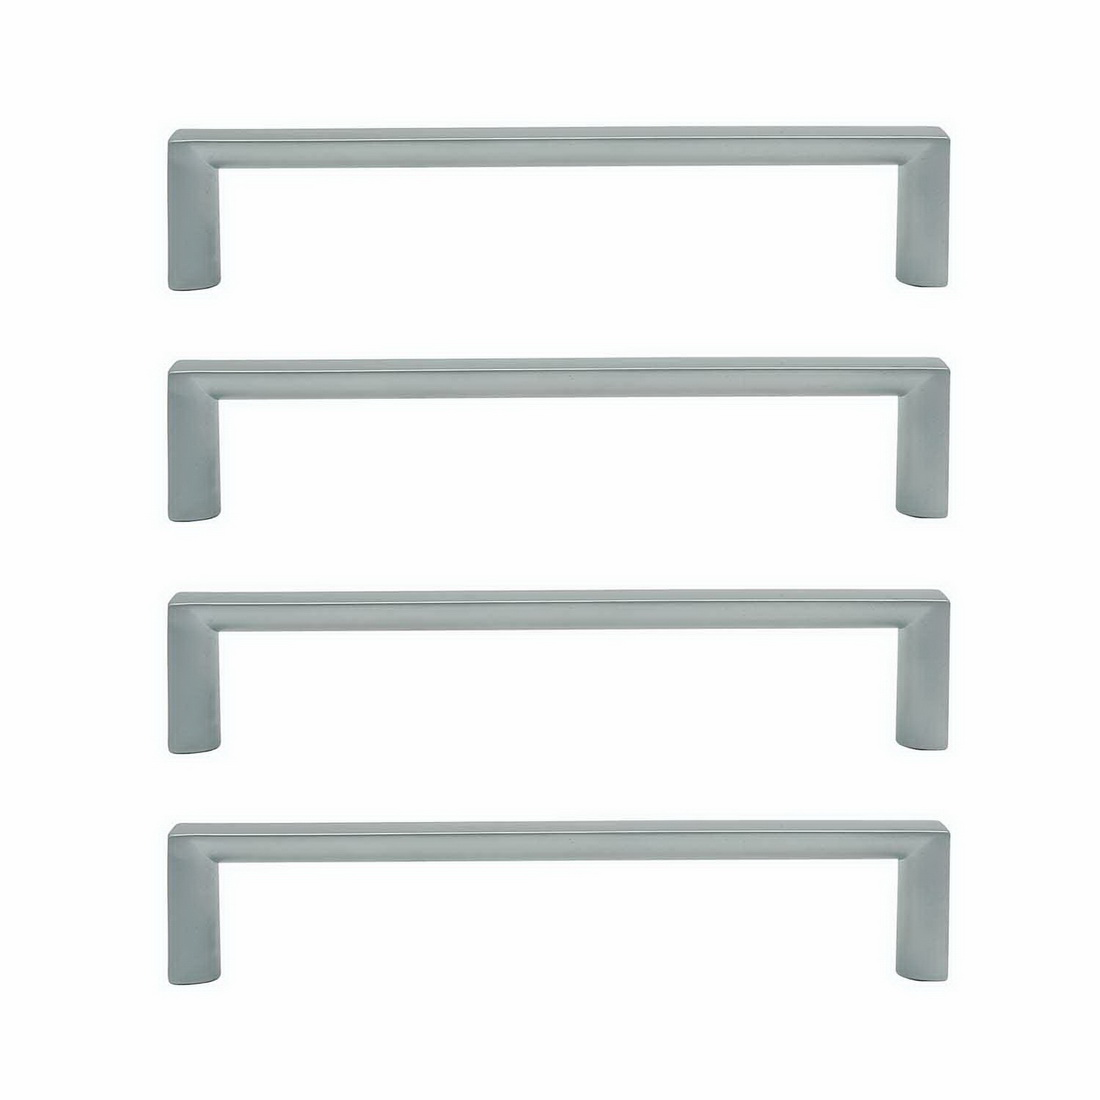 Sincro Cabinet Handle 160mm Zinc Die-Cast Brushed Nickel 4 pack 6749-4-BN